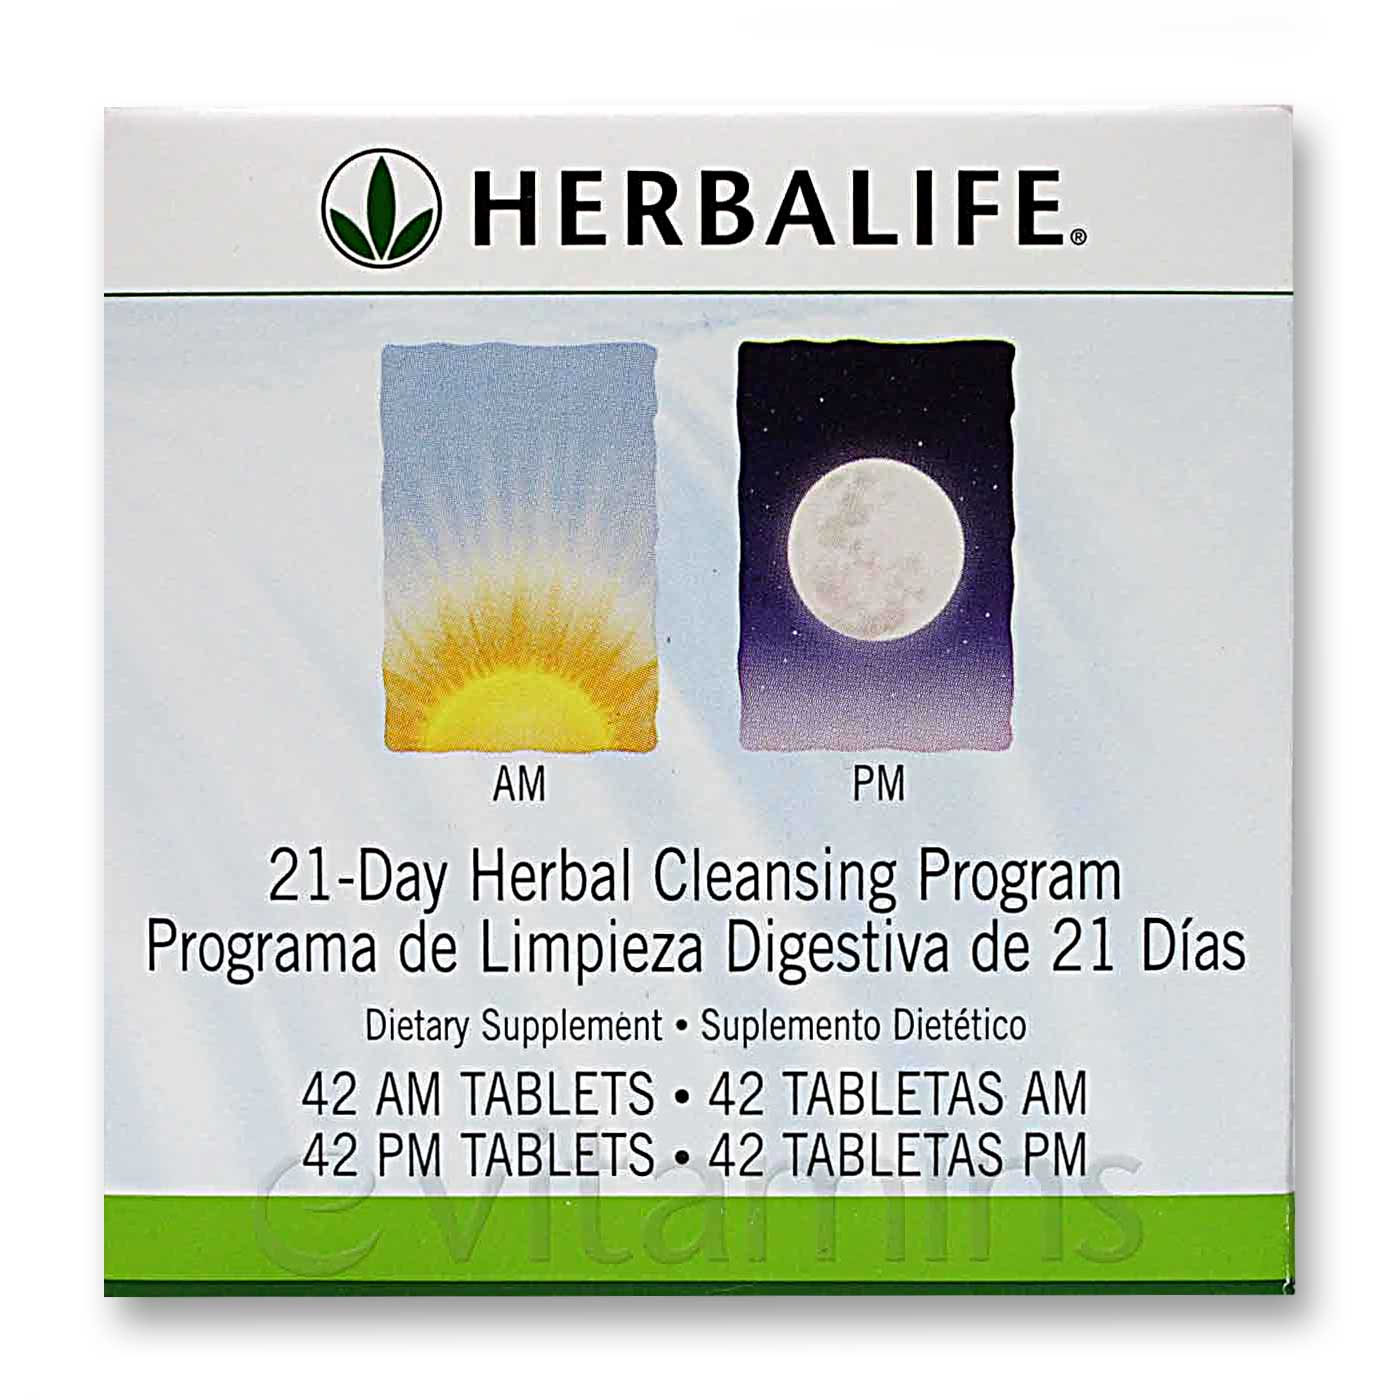 Herbalife 21-Day AM / PM Herbal Cleansing Program - 42 AM Tablets ...